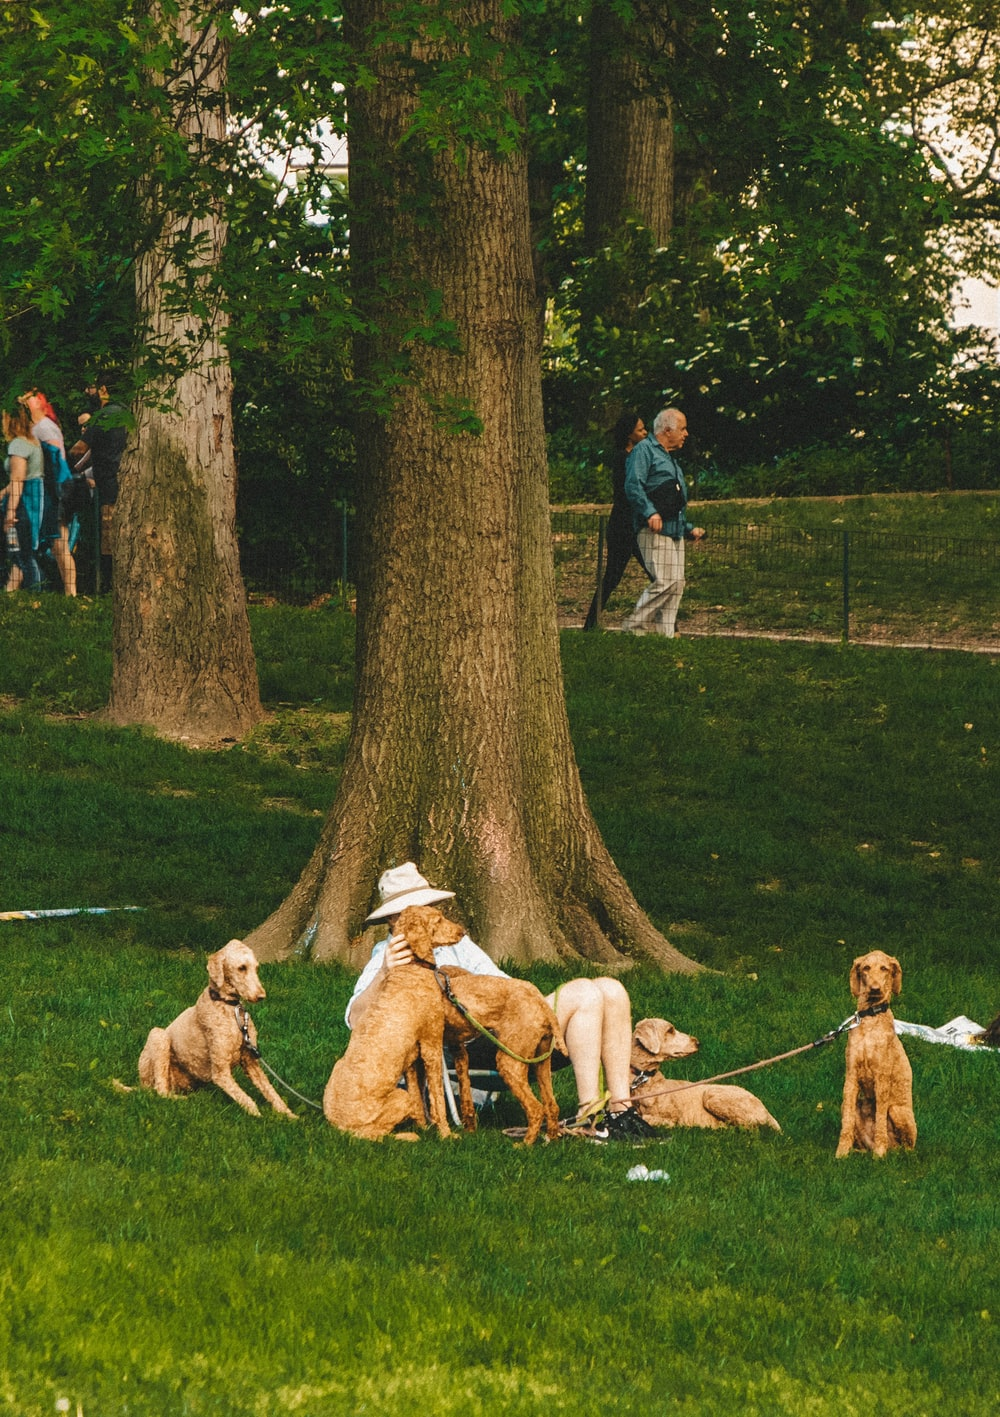 person sitting on grass surrounded by dogs